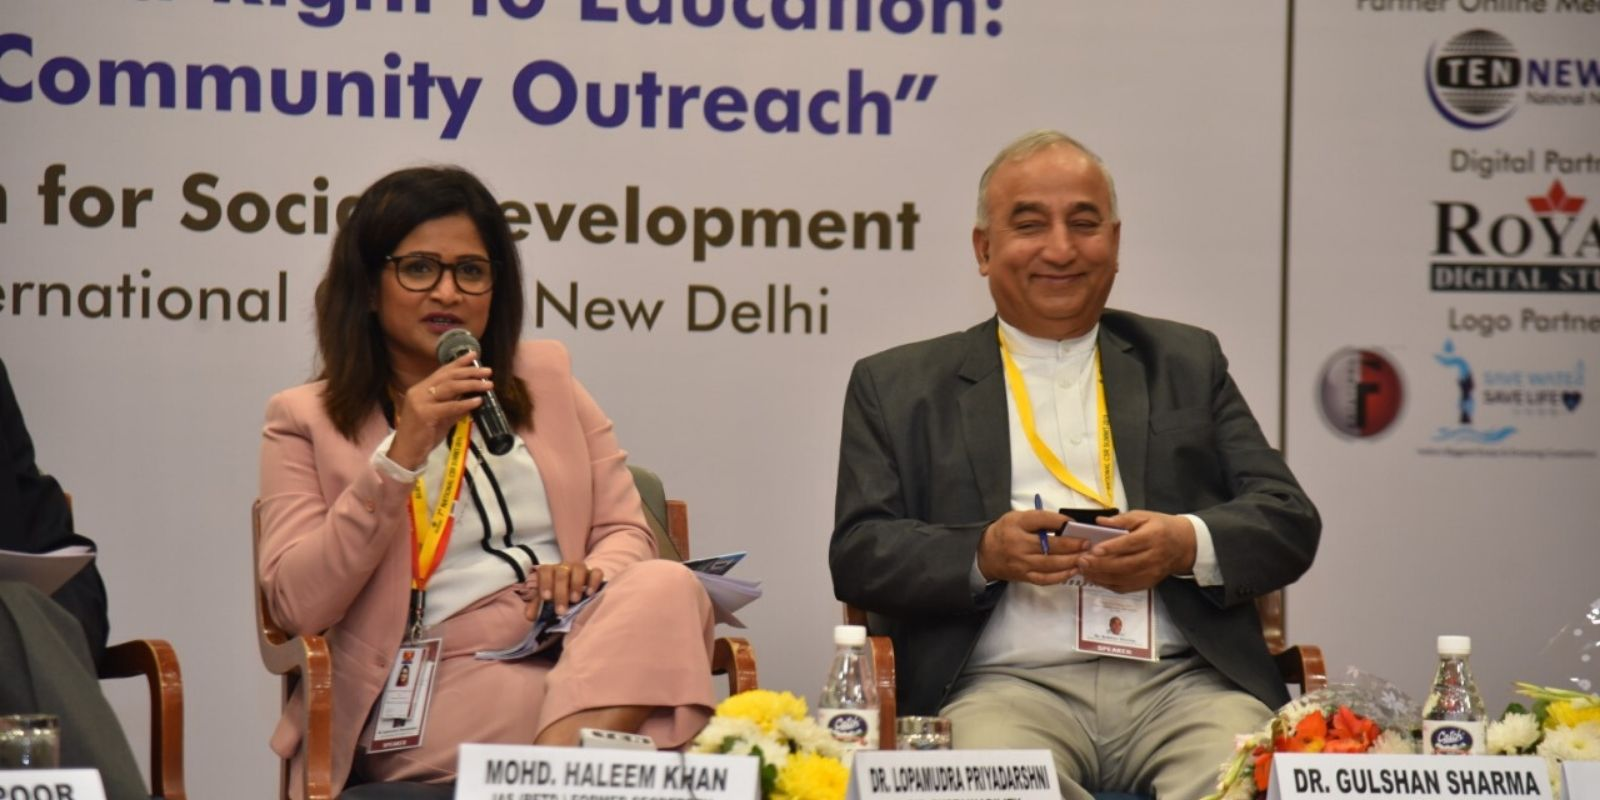 Speaking at the 7th CSR Meet about the Right to Education, New Delhi